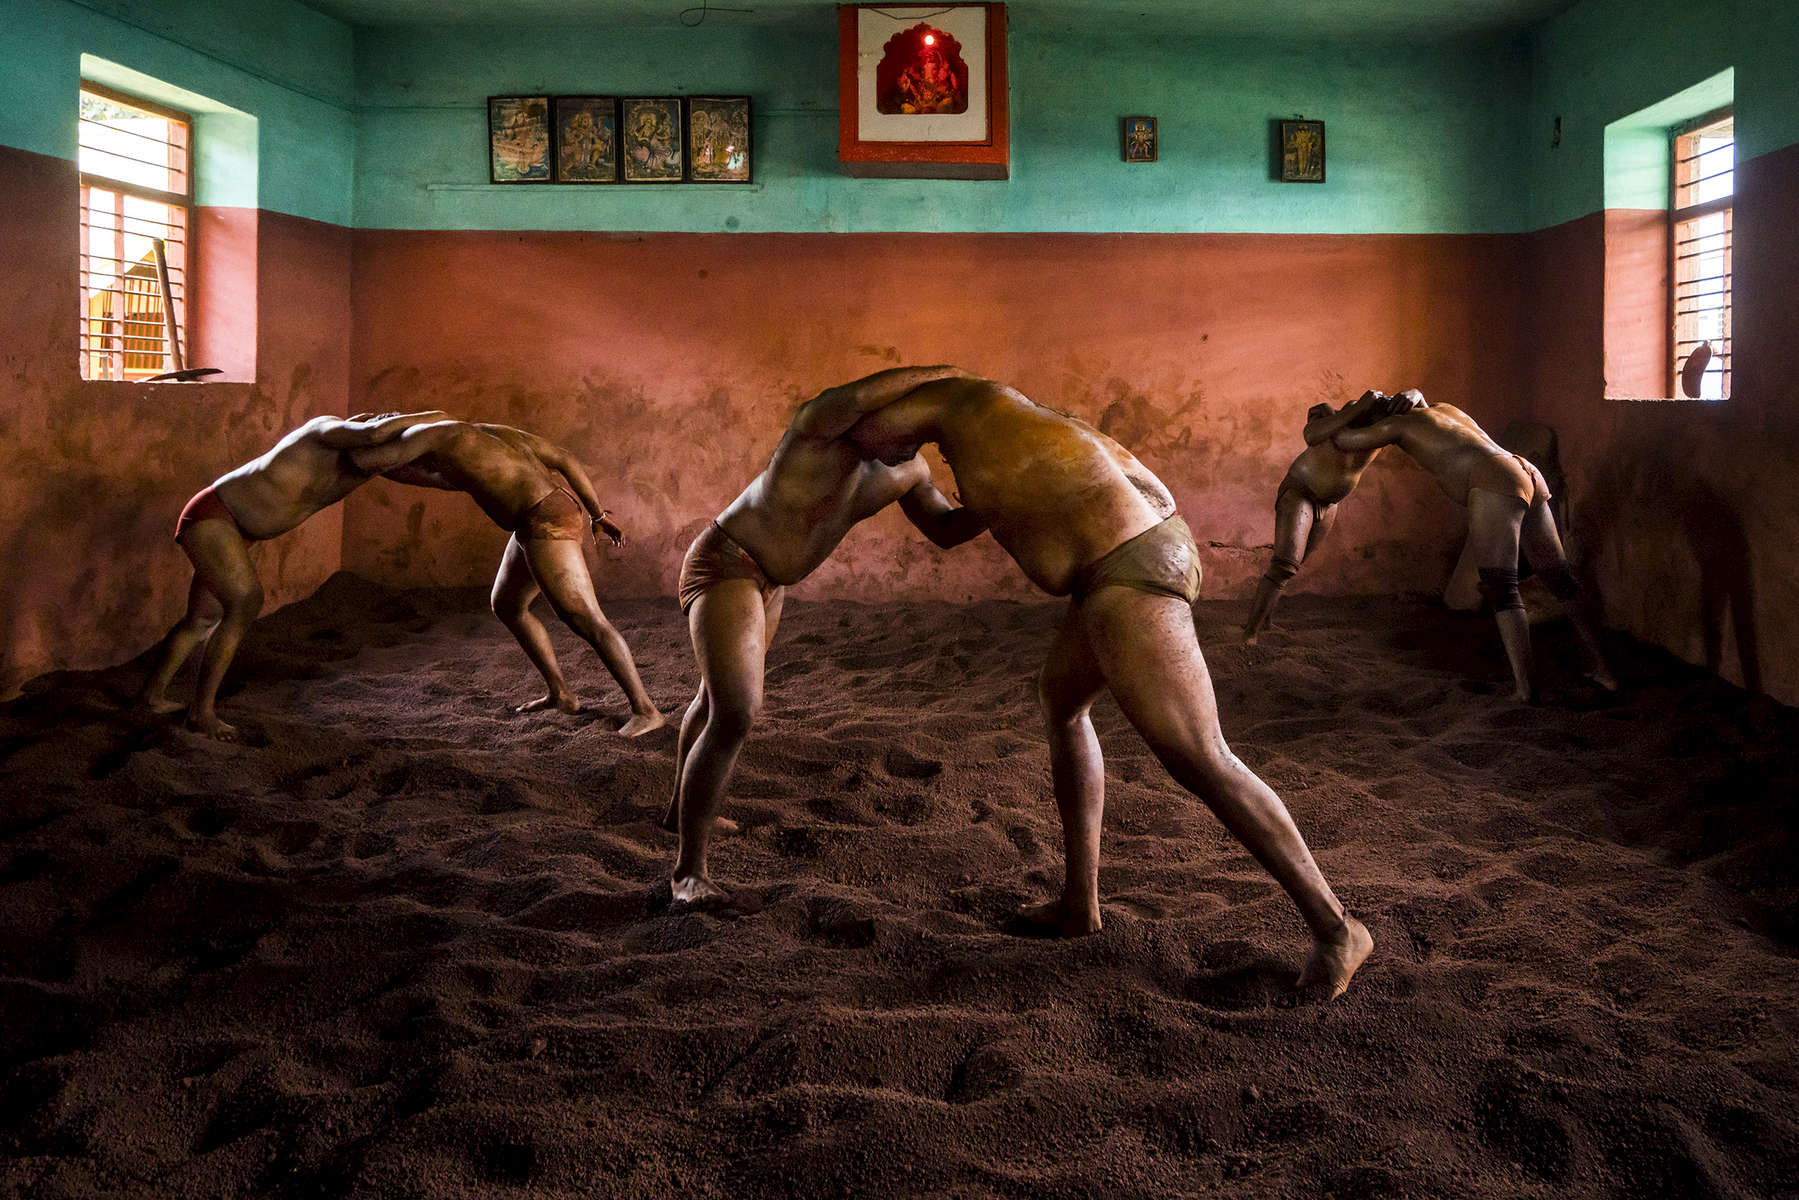 Kolhapur, India | October 8, 2015Indian Kushti wrestlers grapple during daily practice in a talim - a wrestling center - in Kolhapur, India. I spent time during my recent trip in India documenting this traditional sport as part of a larger body of work documenting traditional wrestling worldwide and conflict resolution through sports.